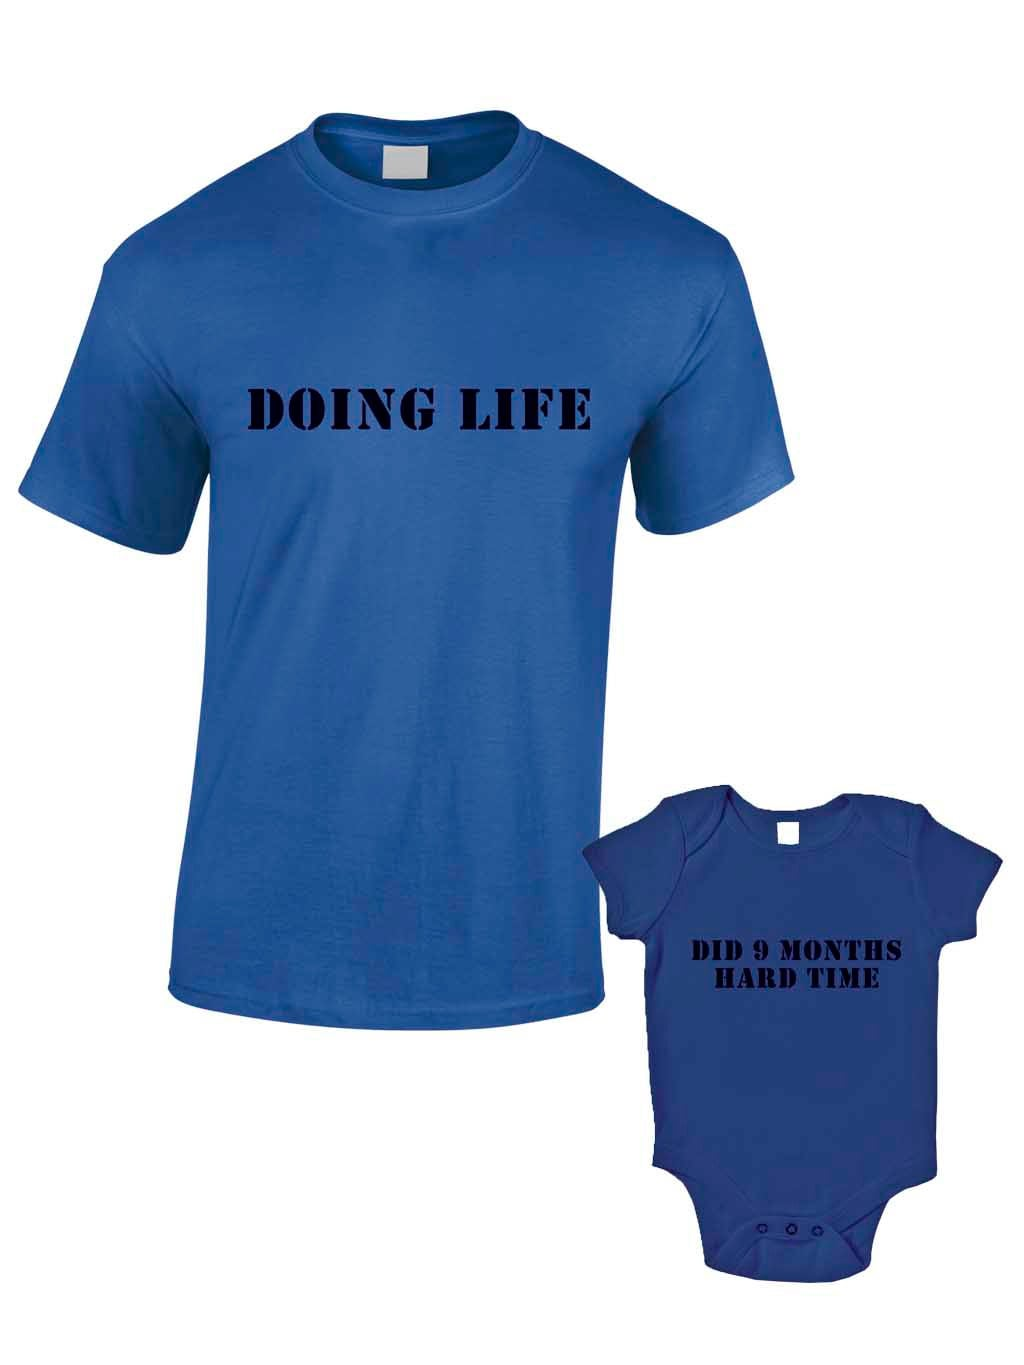 Nine Months Hard Time TShirts or Baby Grow  Matching Father Child Gift Set (2 shirts)  Baby Shower Fathers Day Present Son Daughter Dad